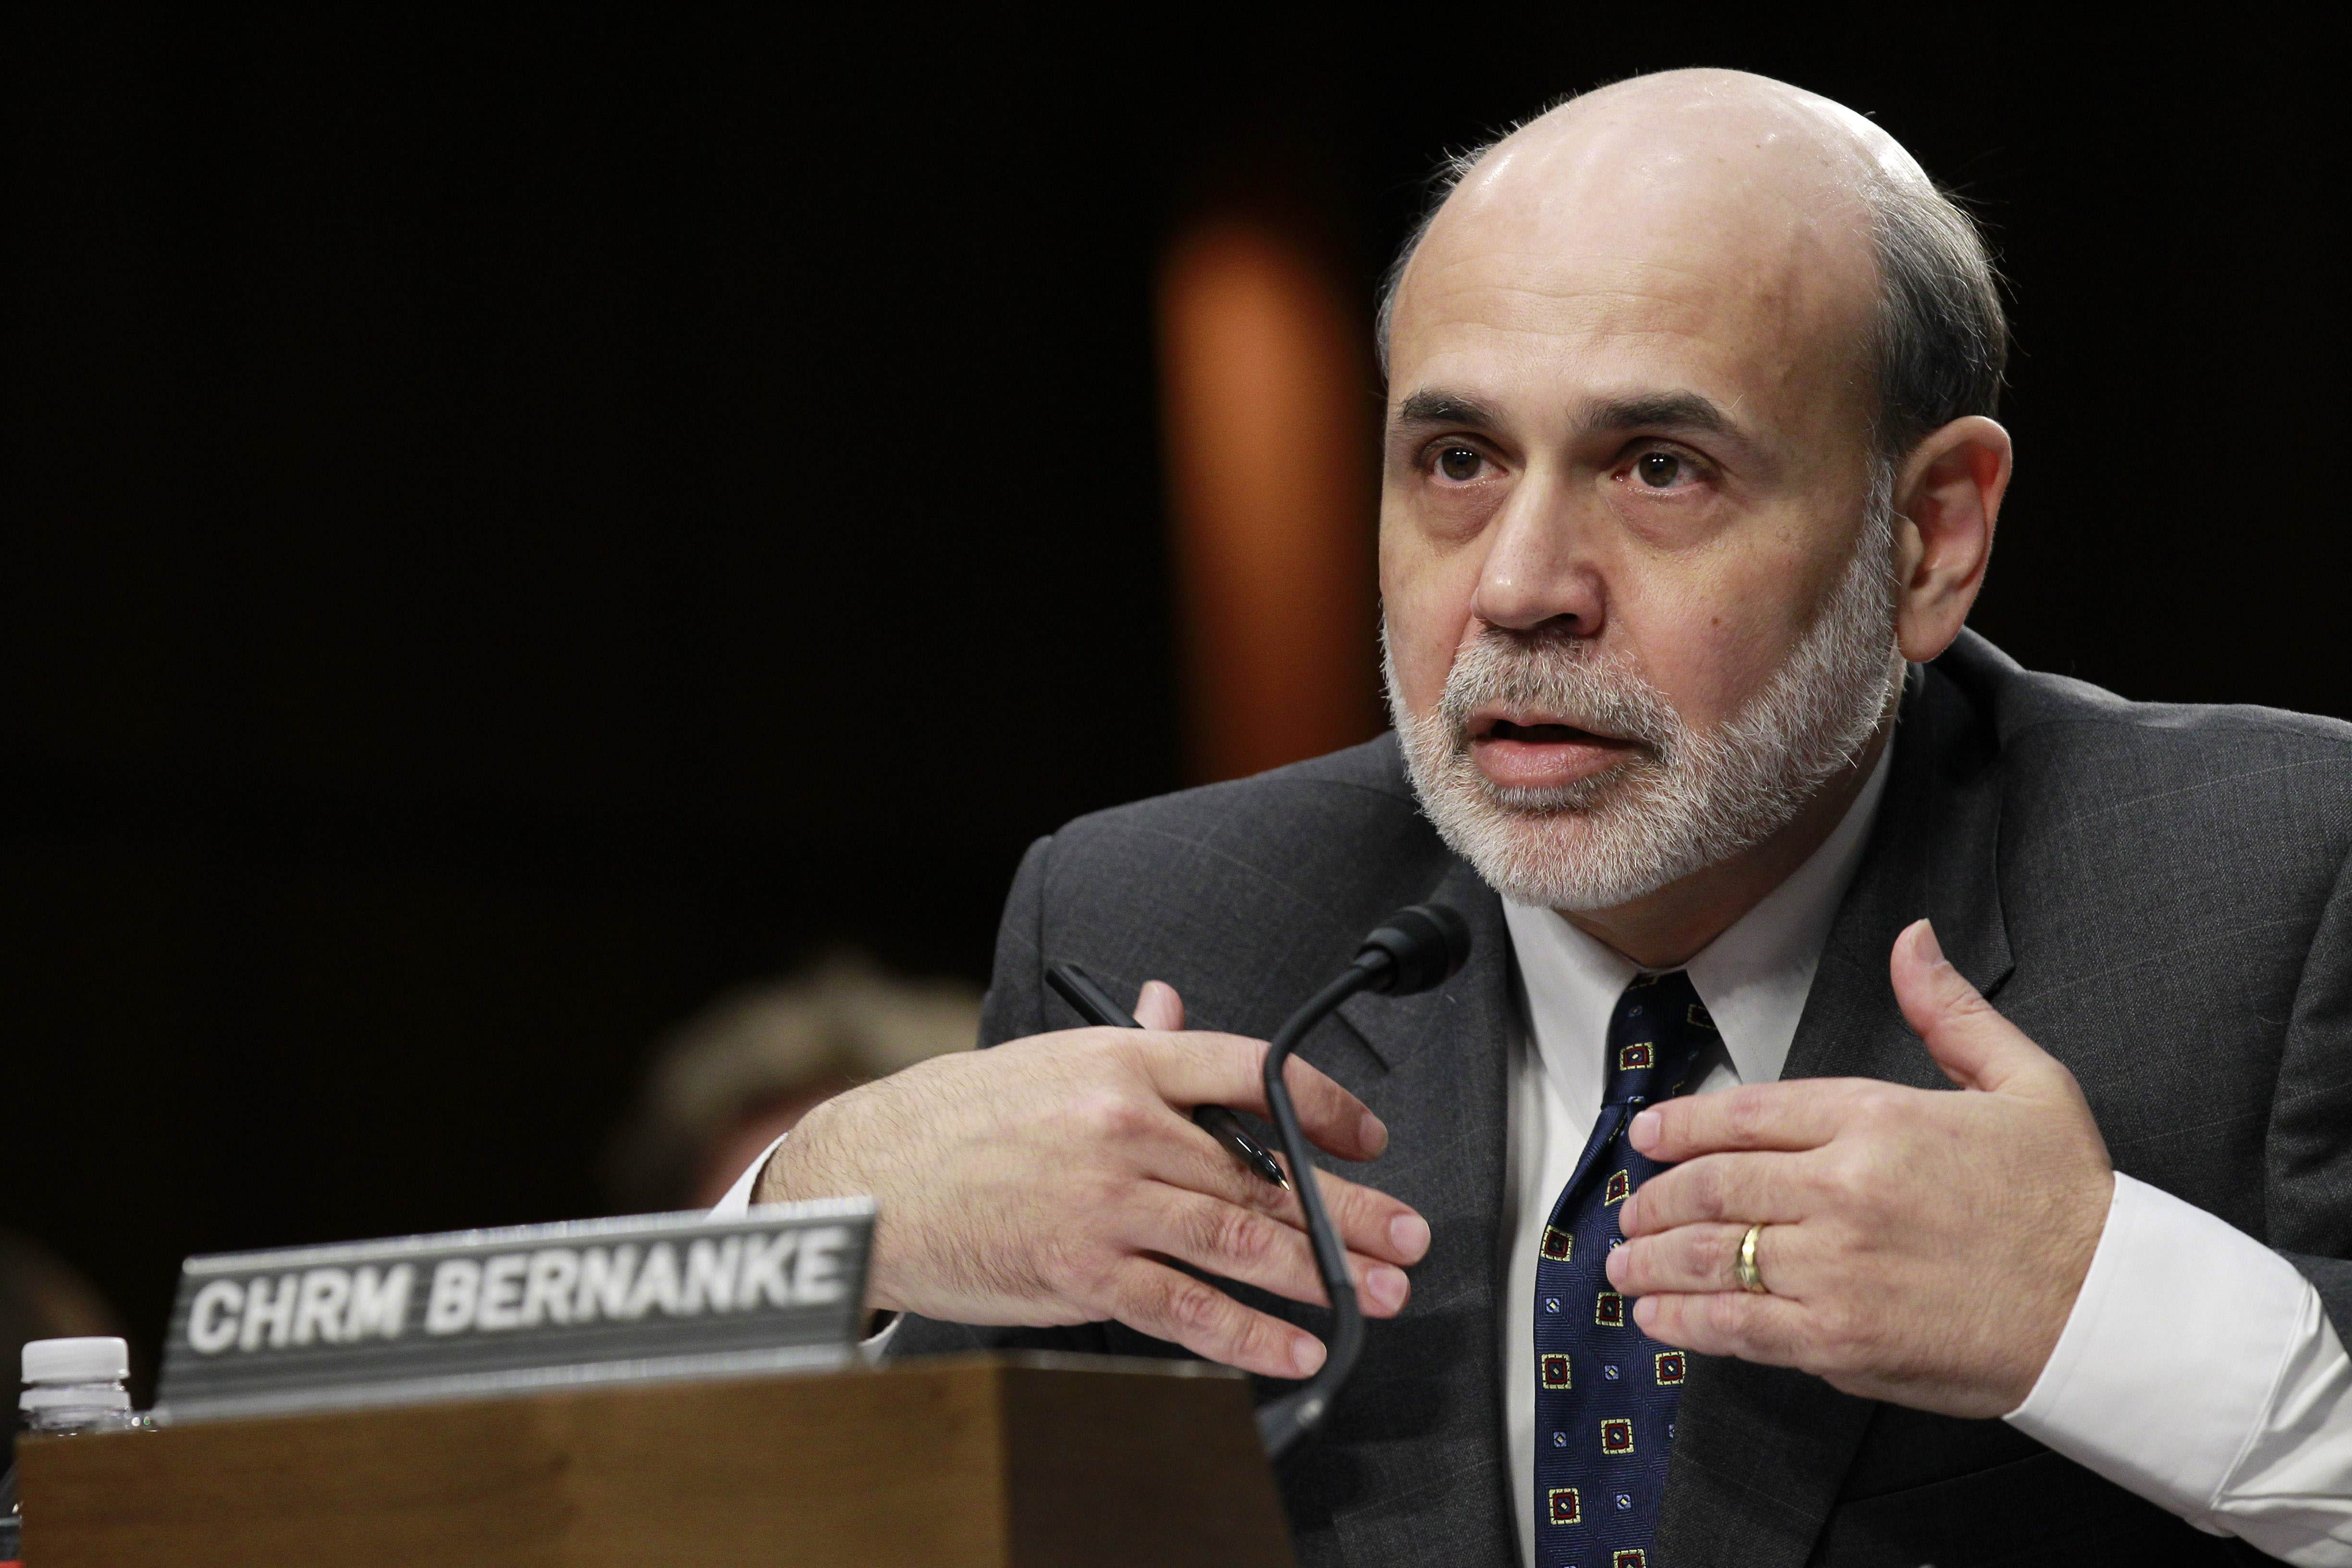 Bernanke rejects charge of Fed 'throwing seniors under bus'